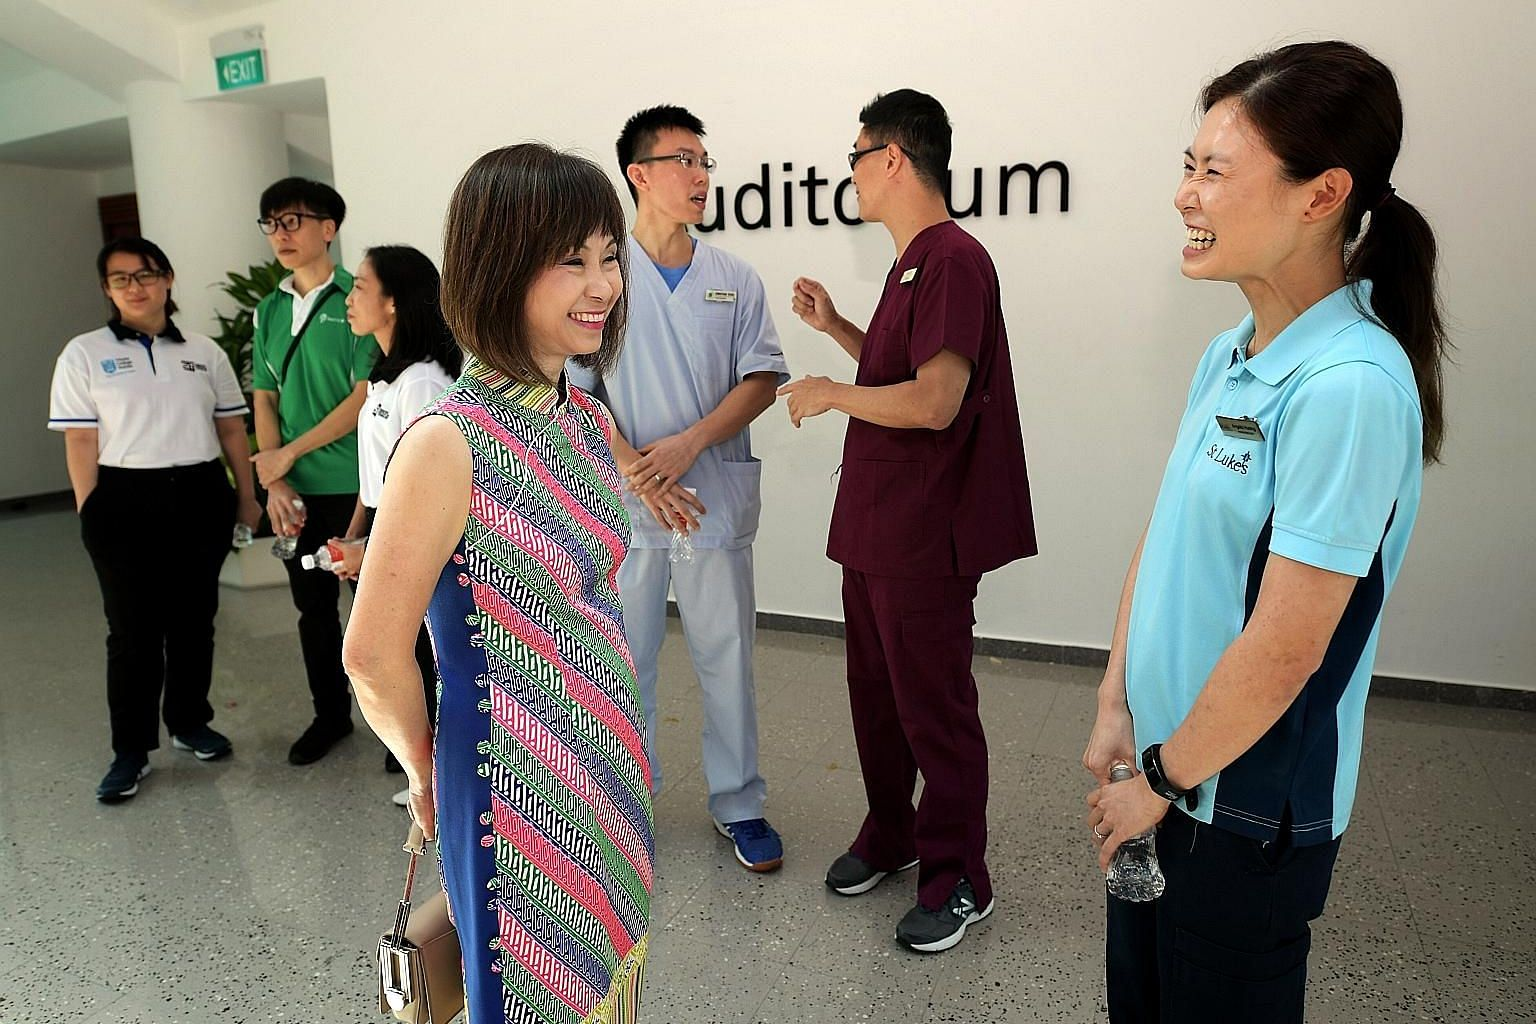 Senior Minister of State for Health Amy Khor speaking to Ms Angela Huang, who successfully made a mid-career switch to become a physiotherapist, at the launch of the new degree programme at Singapore Institute of Technology yesterday.